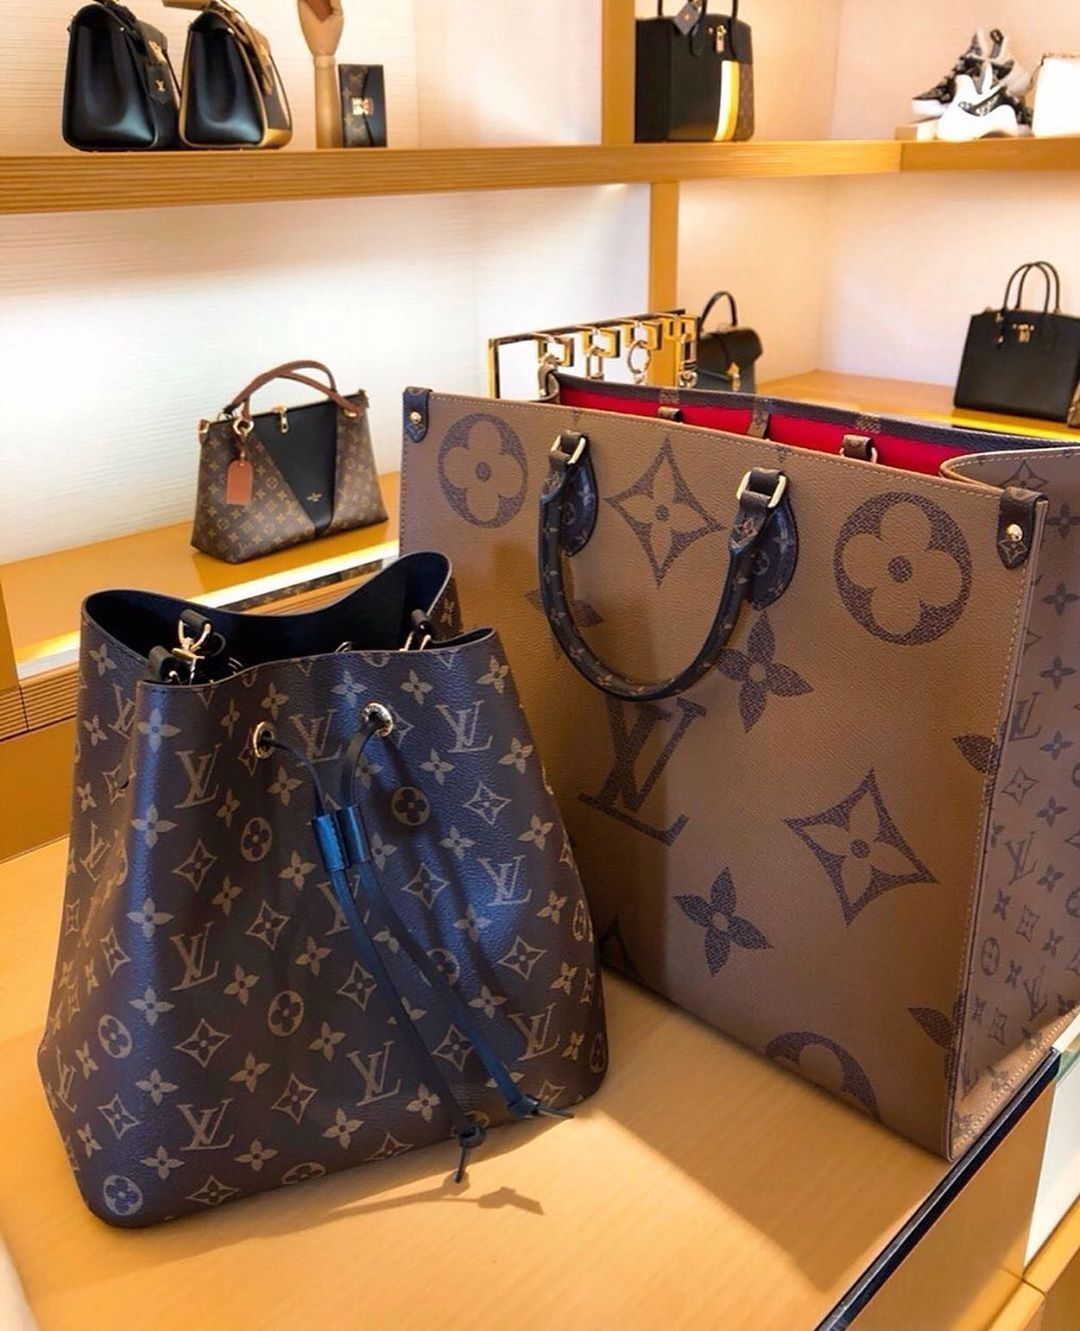 High Quality Replica handbags | best fake designer bags | Fake designer bags,  Bags designer, Louis vuitton bag